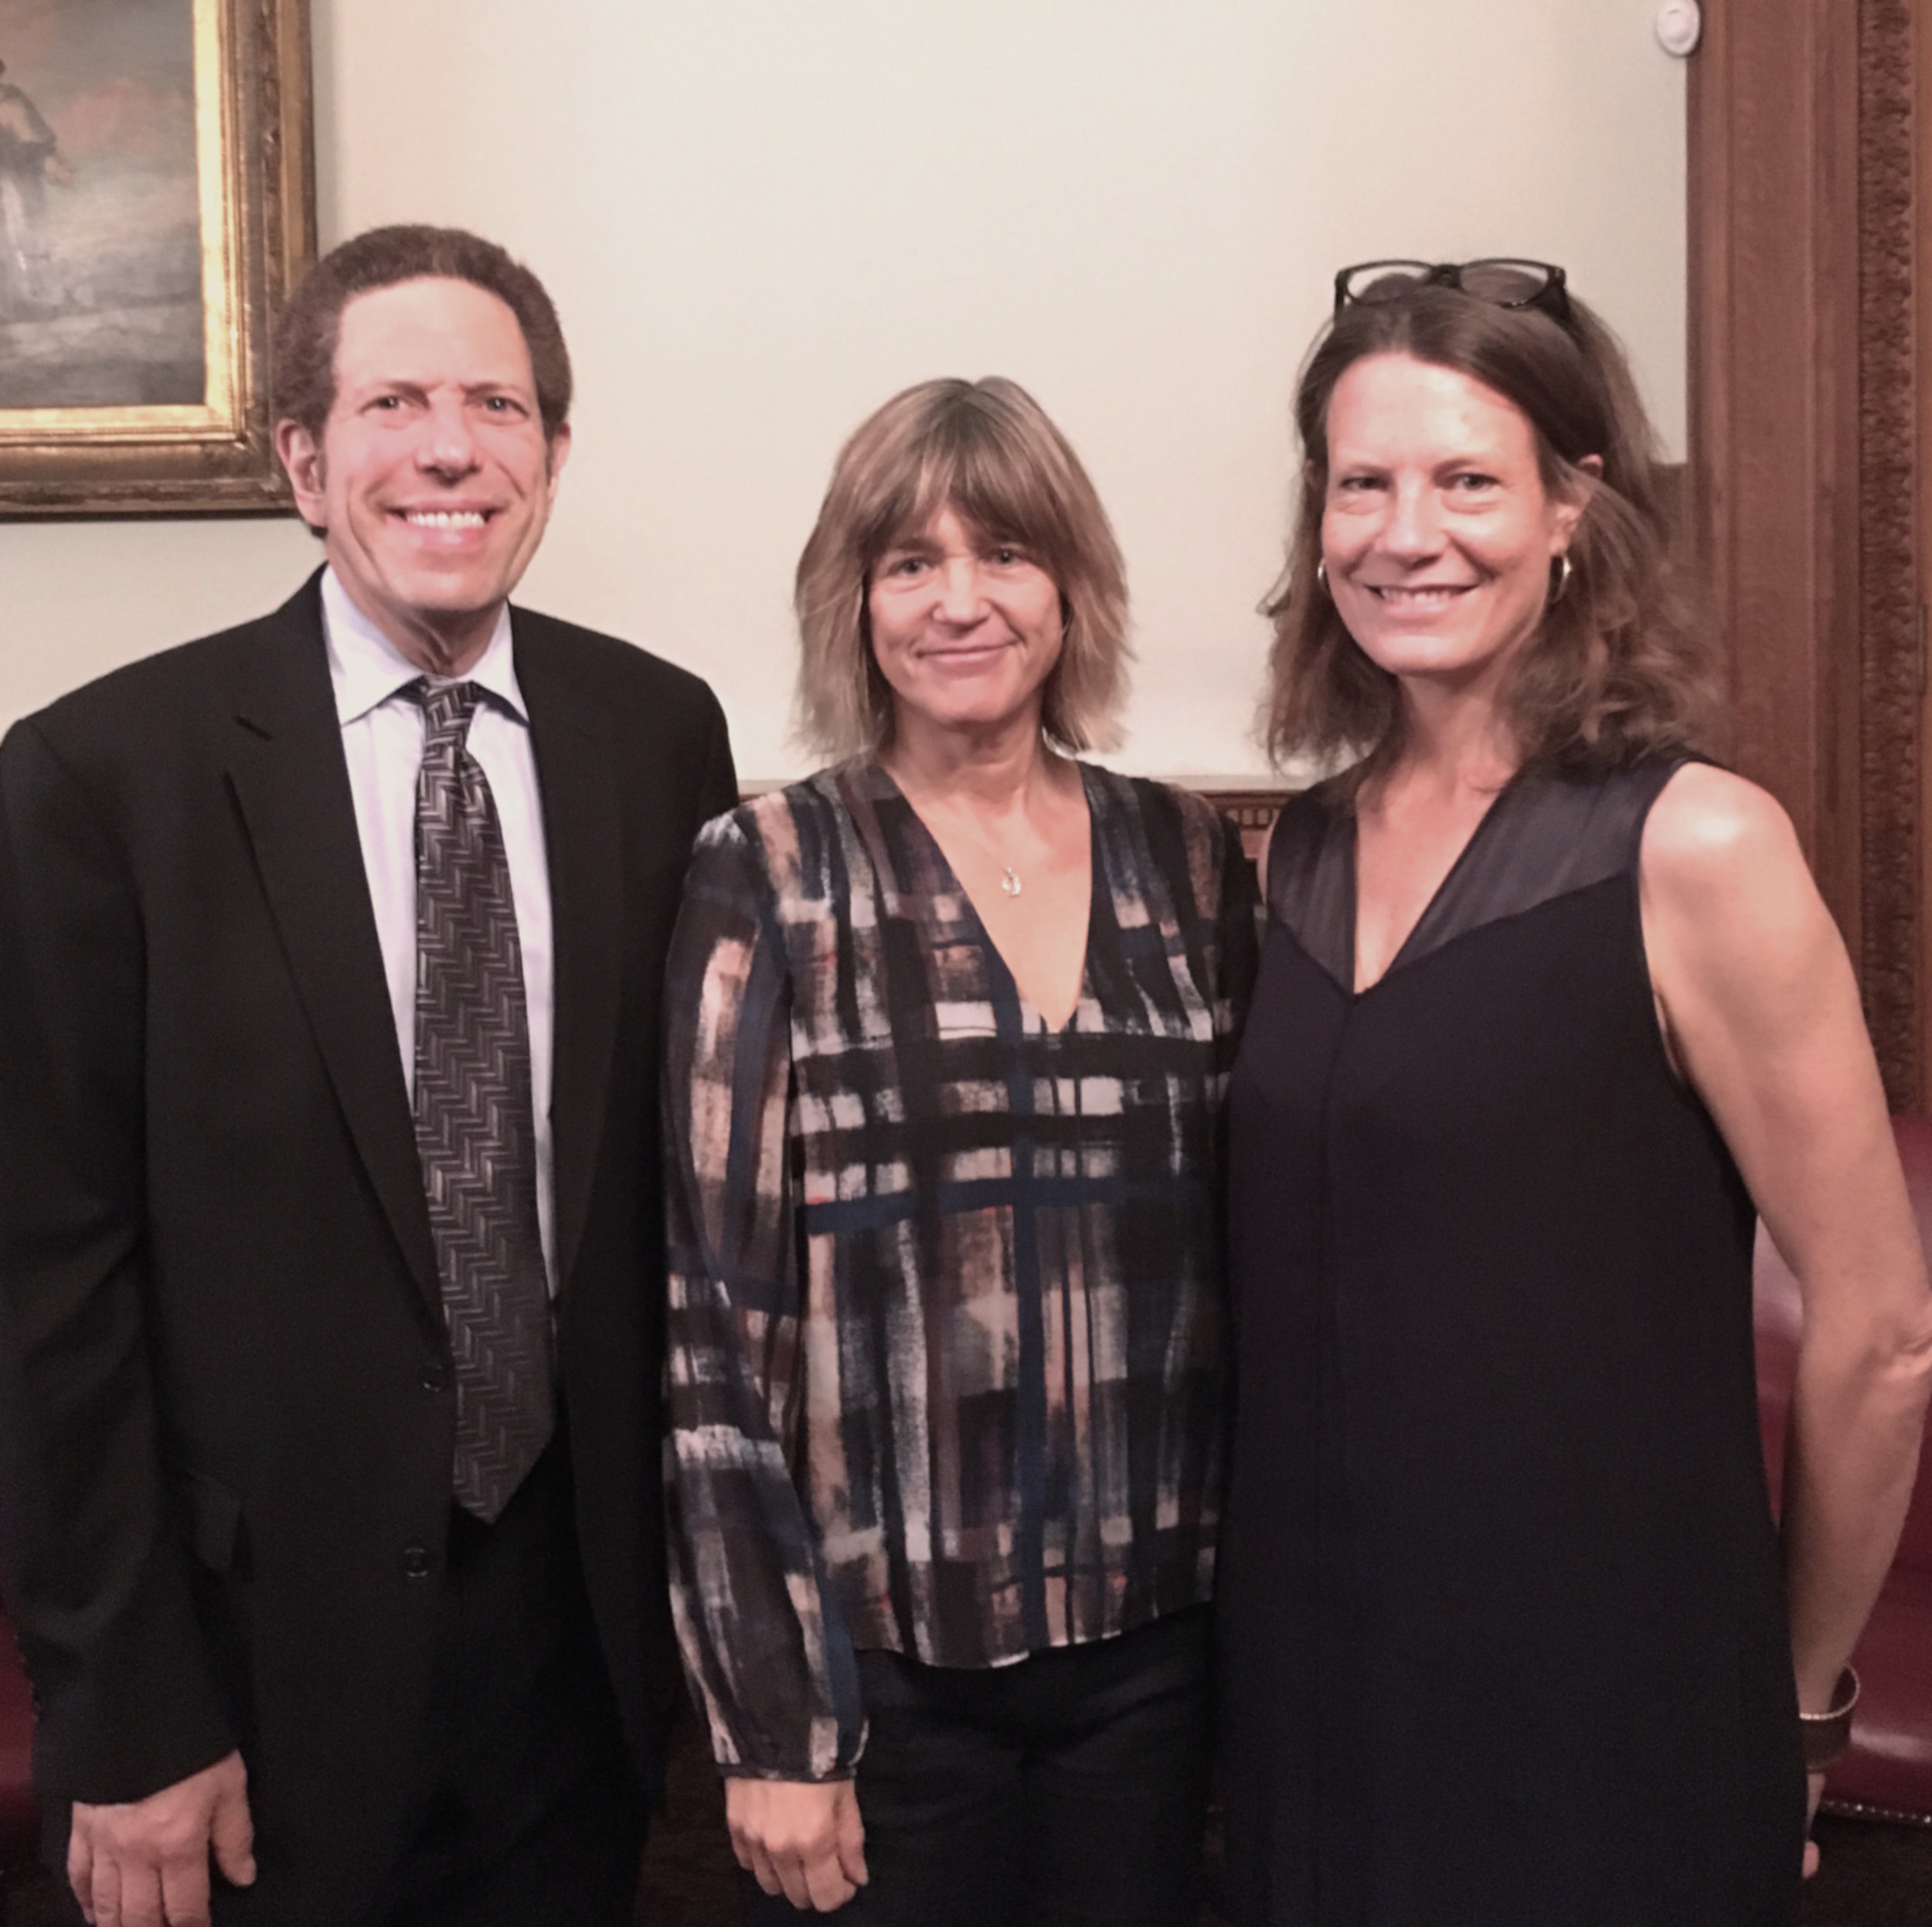 ISSP-NYC Founder&Co-Chair Mark Wolf, NYU-CSB Director Tensie Whelan, and ISSP-NYC Founding Co-Chair Trisha Bauman;